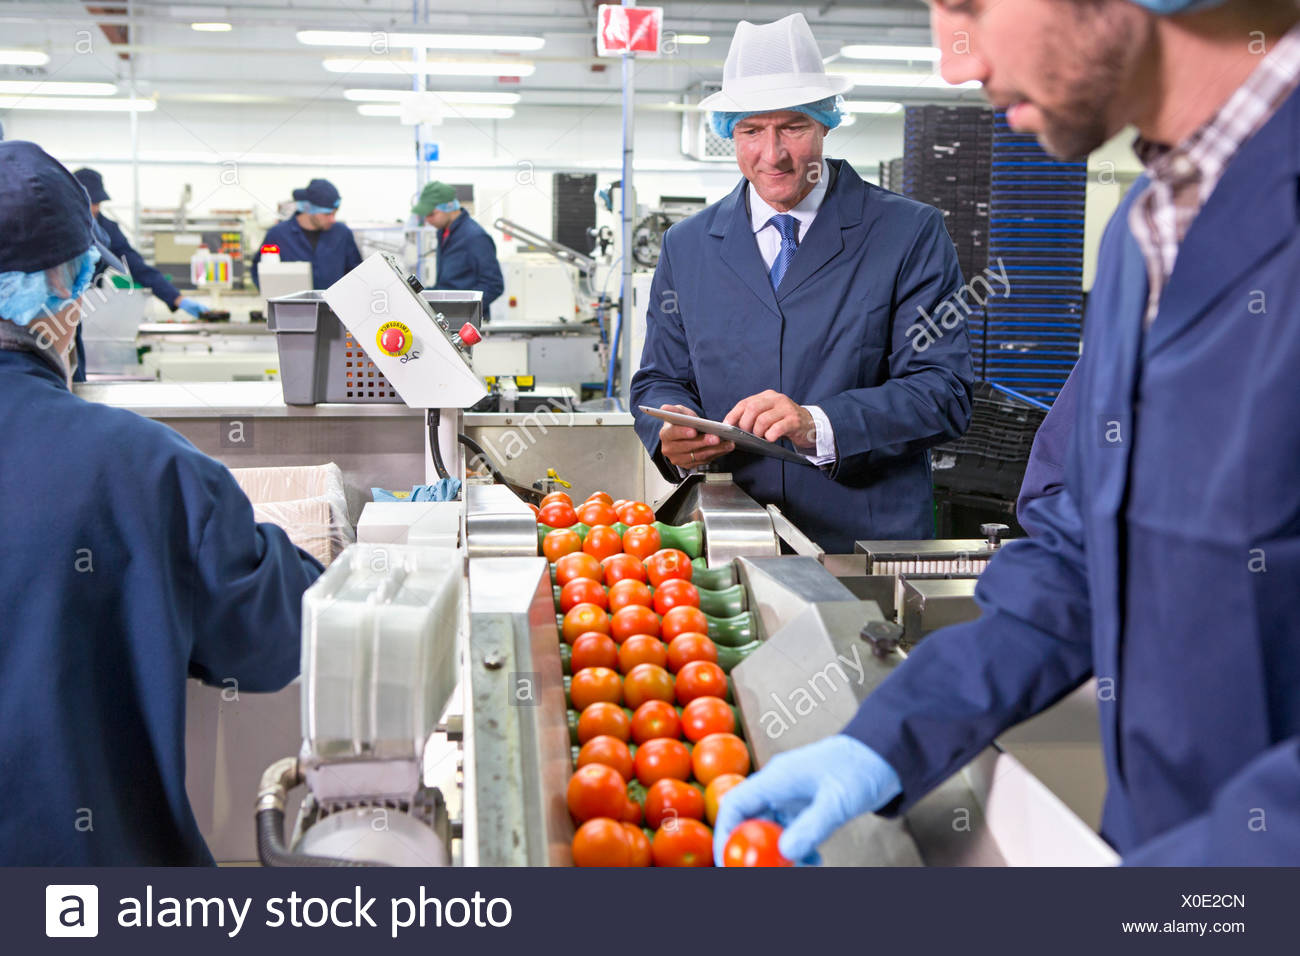 Quality control workers inspecting ripe red tomatoes on production line in food processing plant - Stock Image